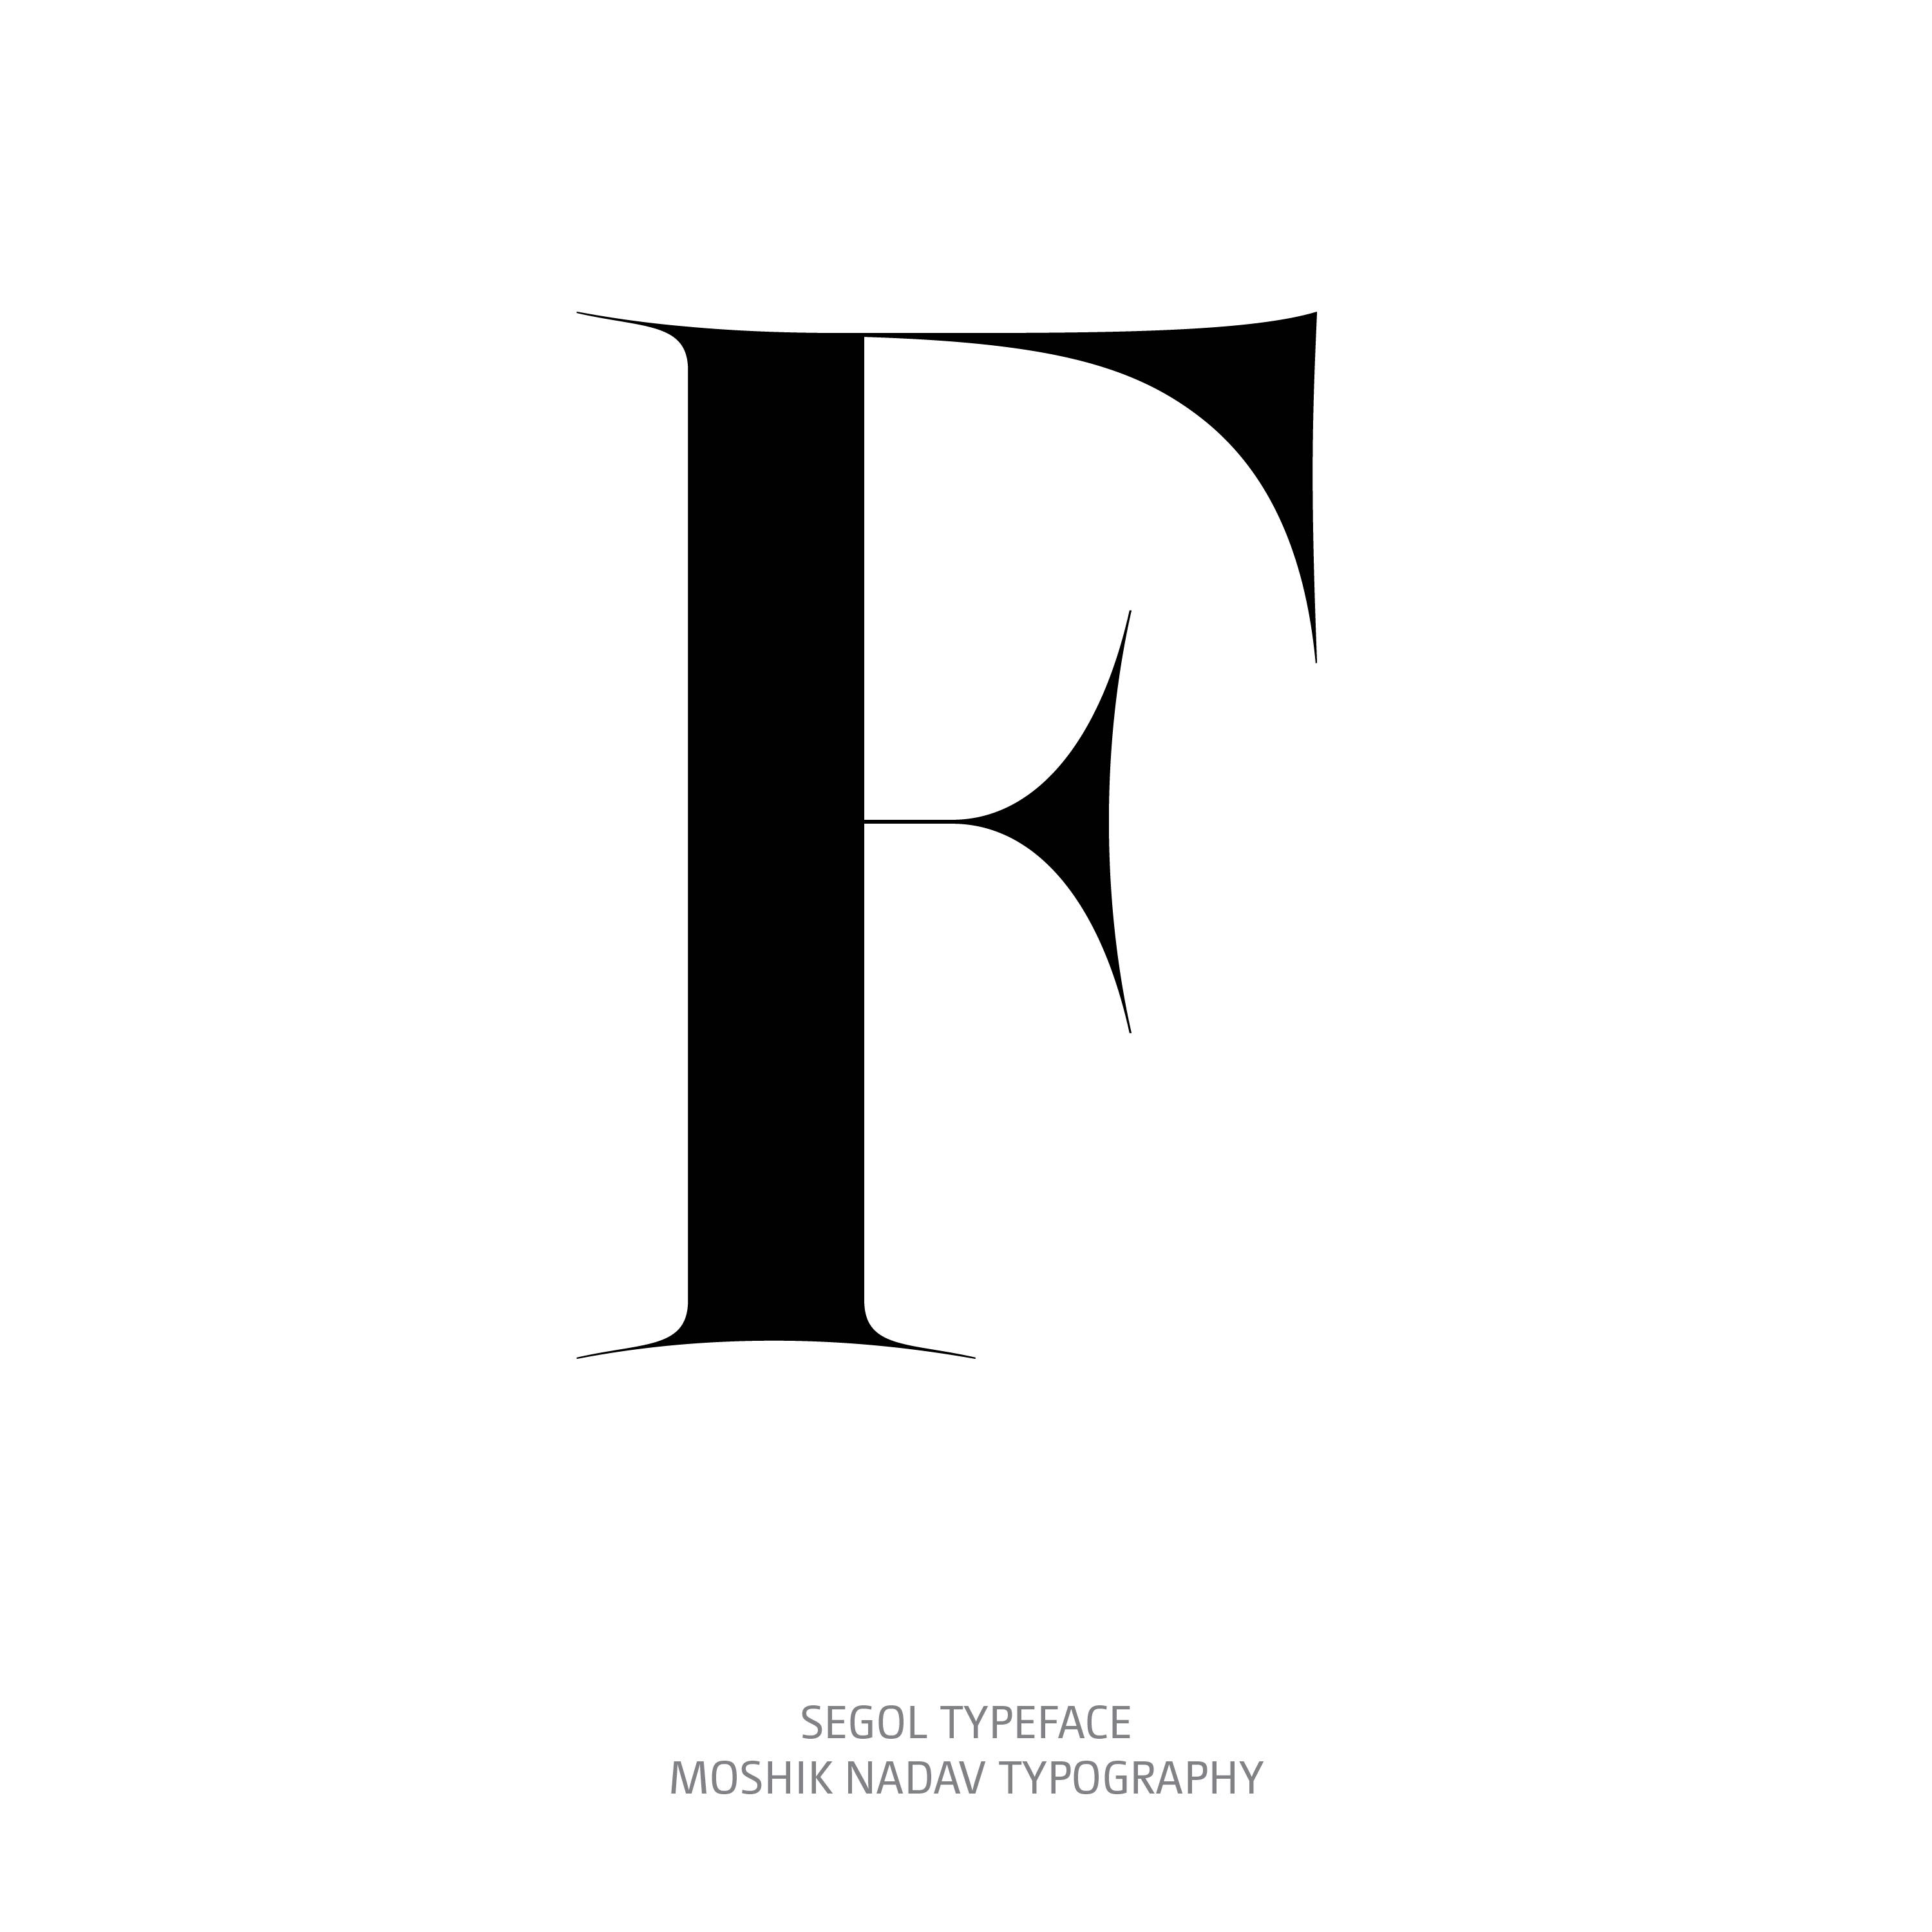 Segol Typeface F The Ultimate Font For Fashion Typography and sexy logos